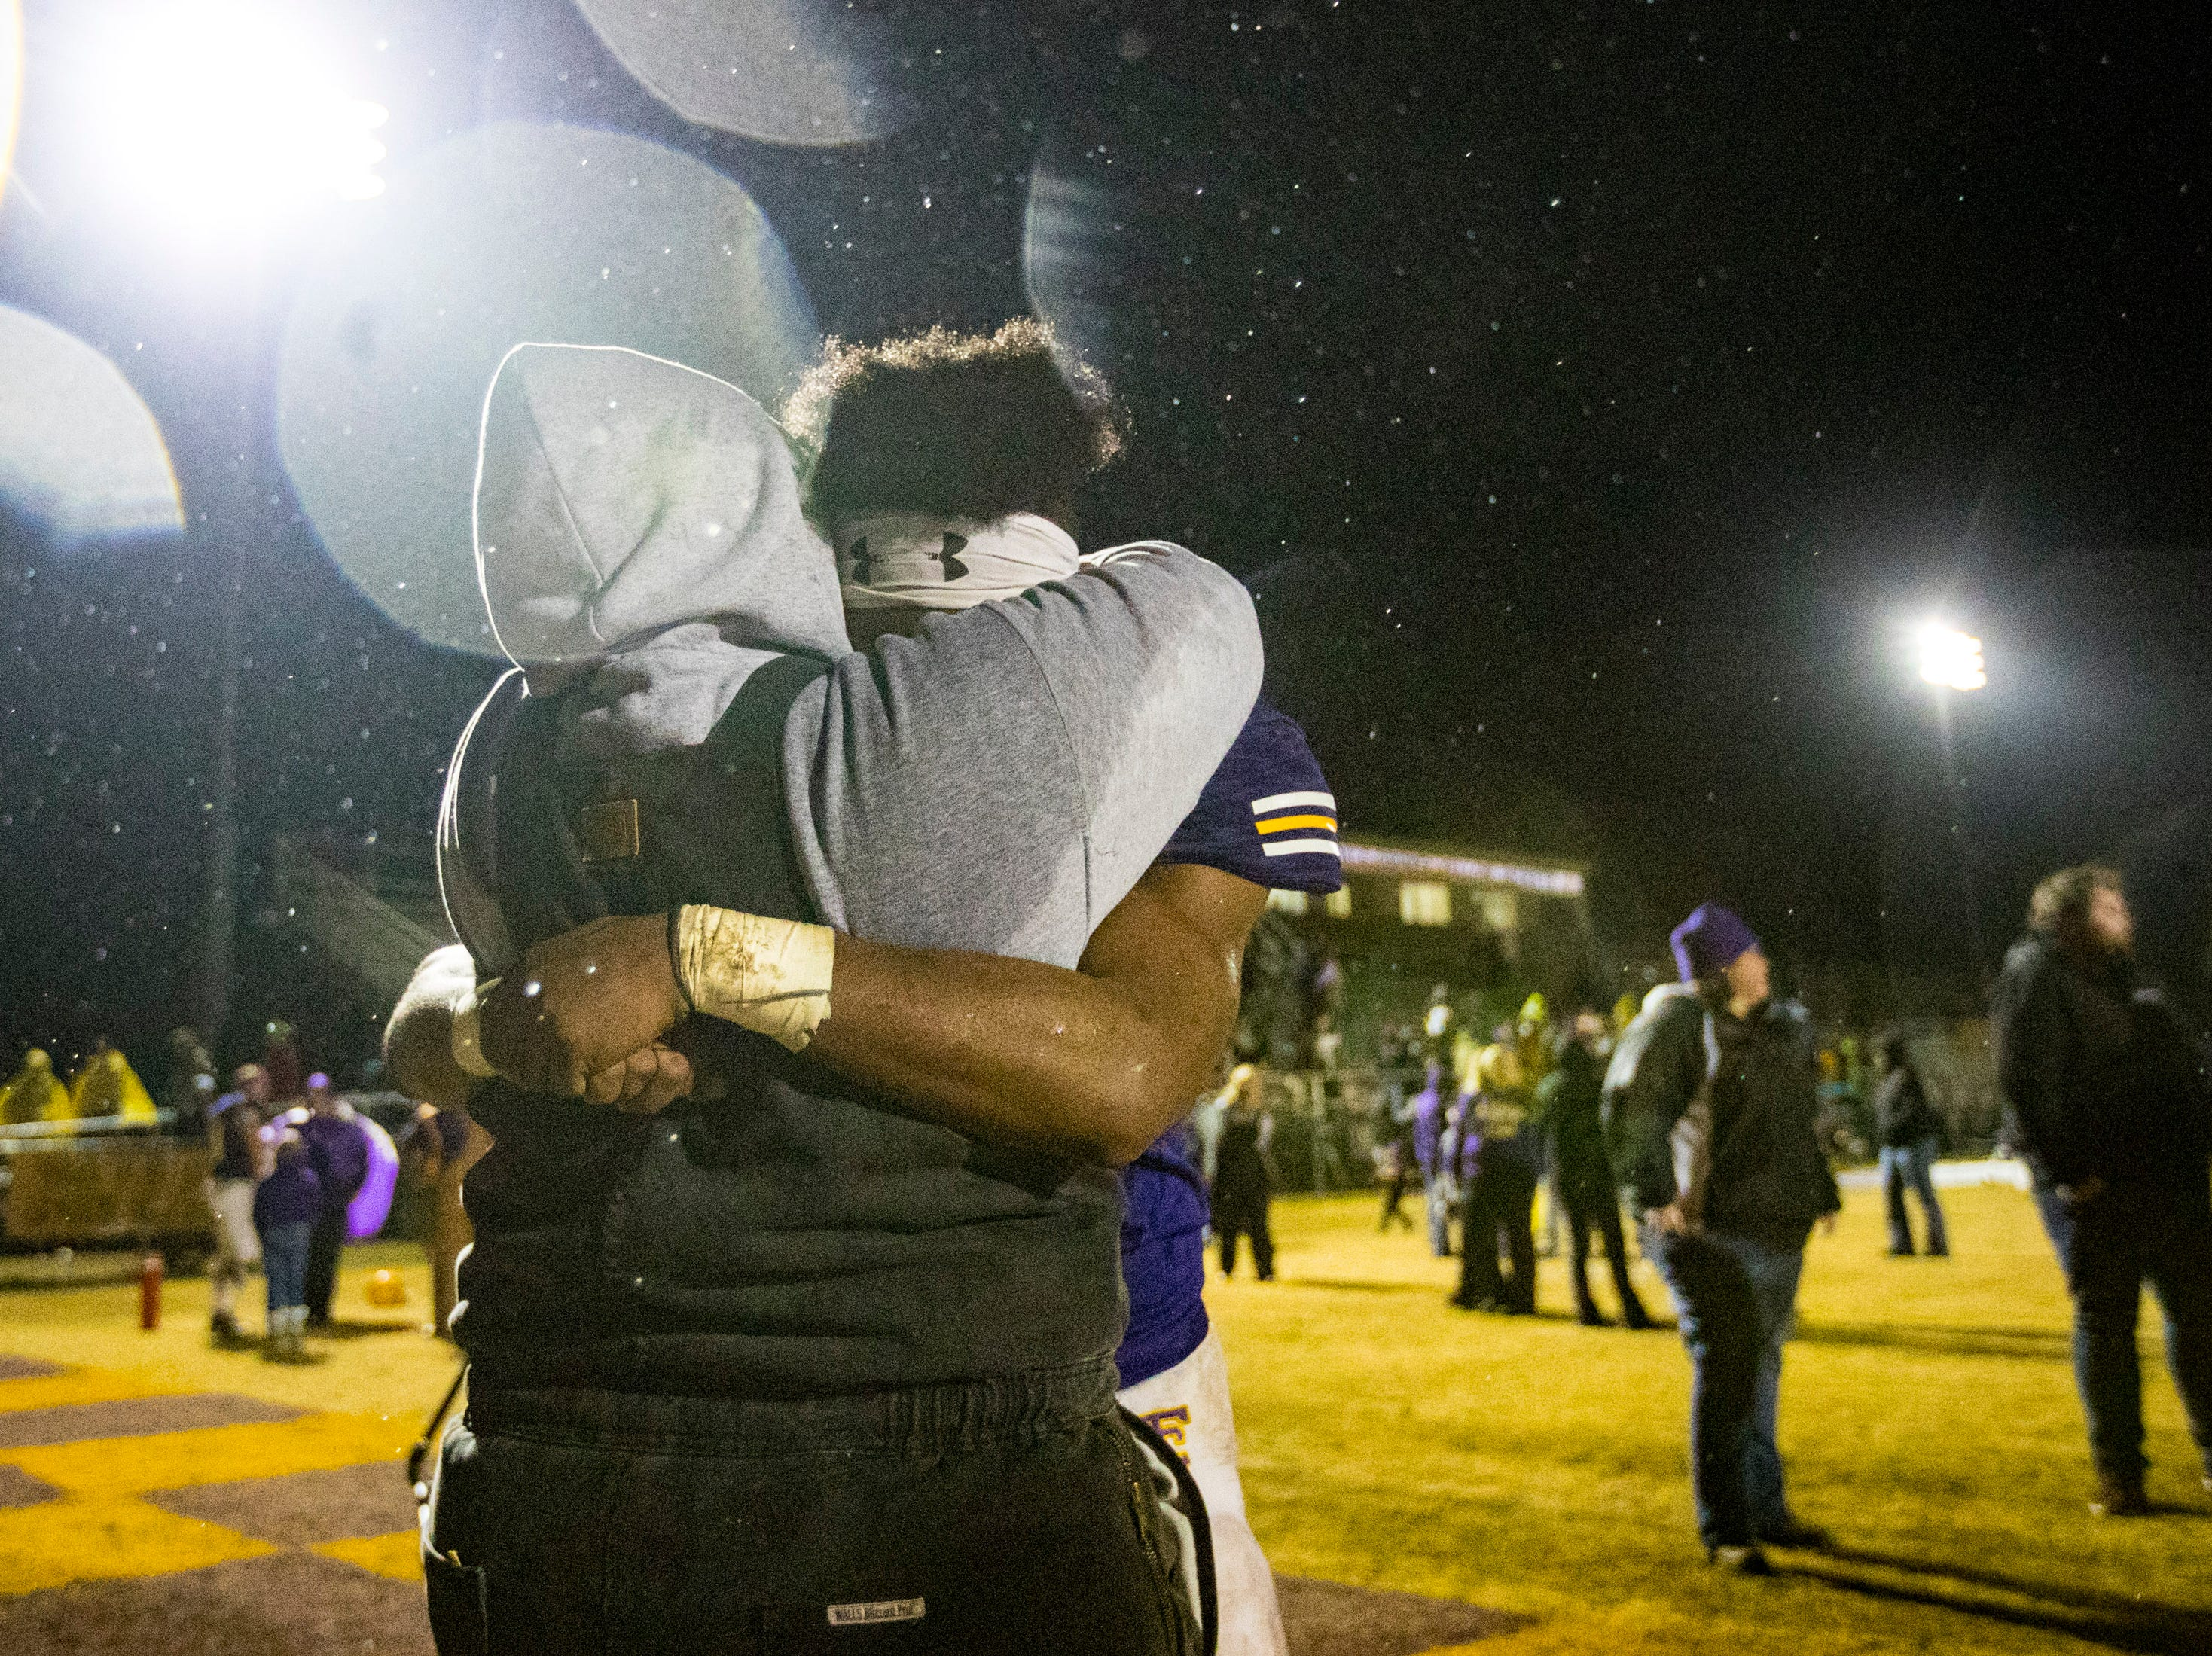 Trousdale County's Dyson Satterfield (21) gets a hug from his mom Kelly Woodmore after Trousdale County's game against Meigs County at Jim Satterfield Stadium in Hartsville on Friday, Nov. 23, 2018.